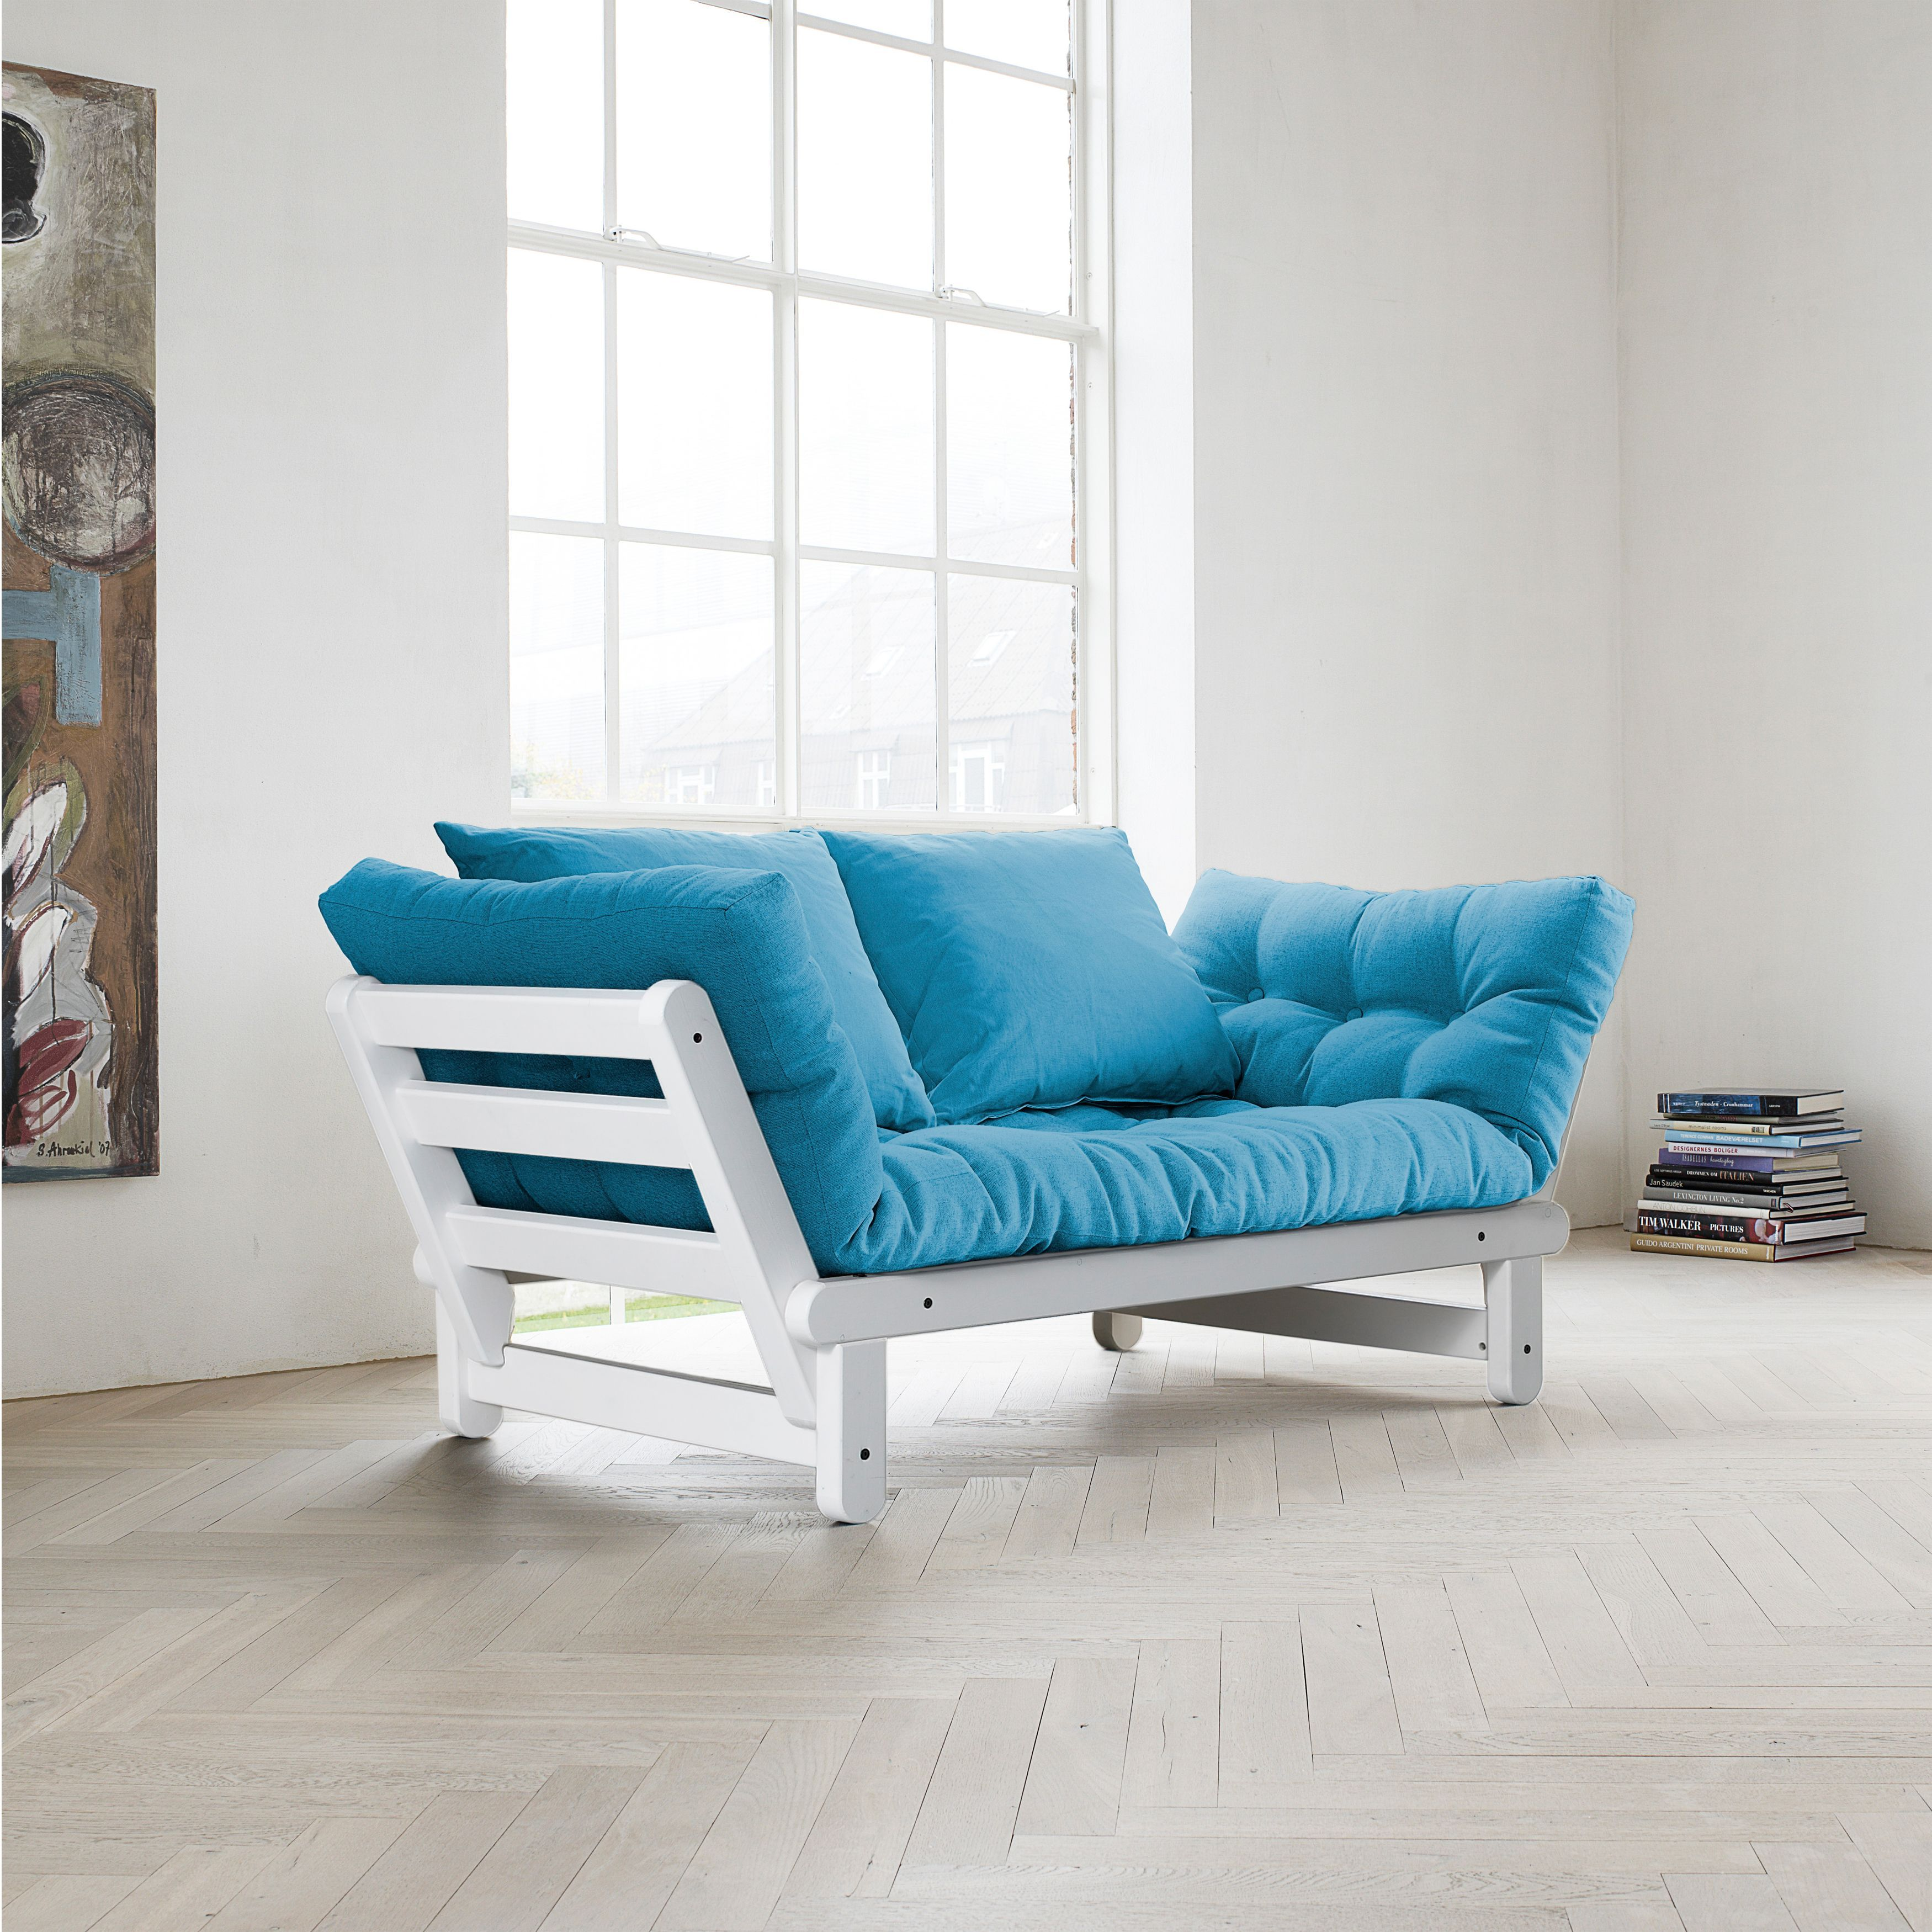 With A Unique Design And High Quality Construction The Fresh Futon Beat Provides Comfortable Stylish Solution To Your Sitting Sleeping Needs